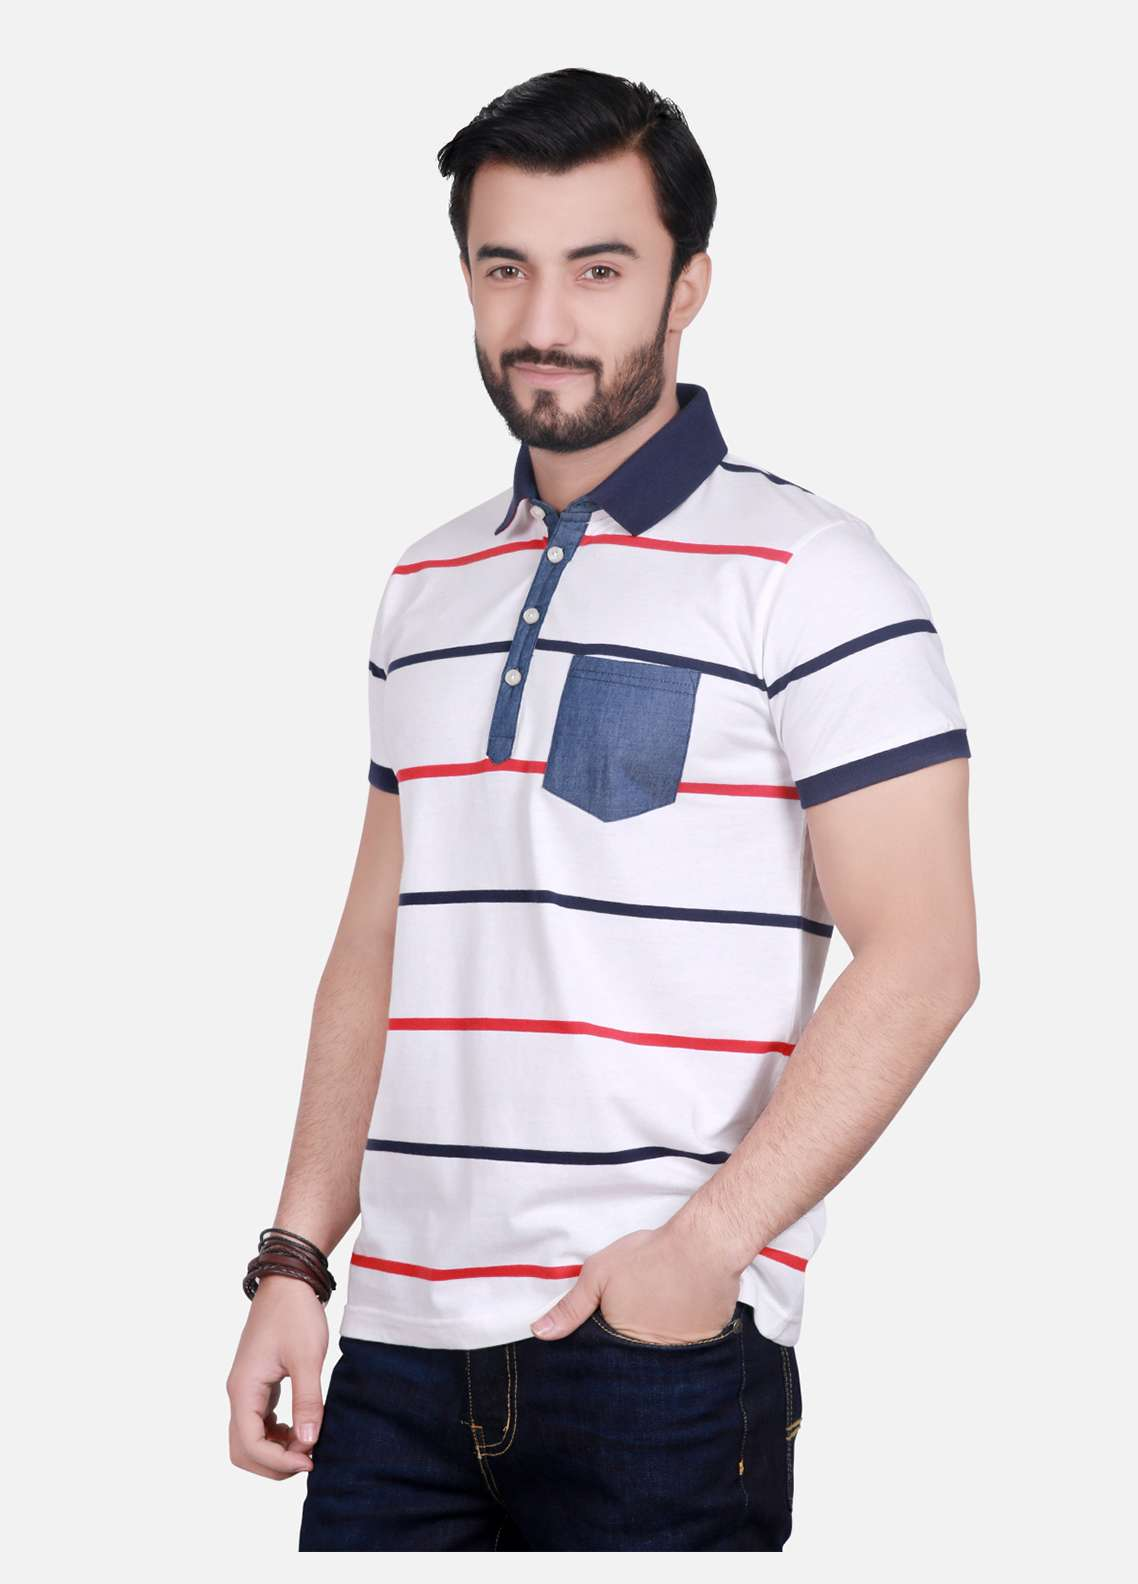 Furor Cotton Polo Men T-Shirts - Off white FRM18PS 010